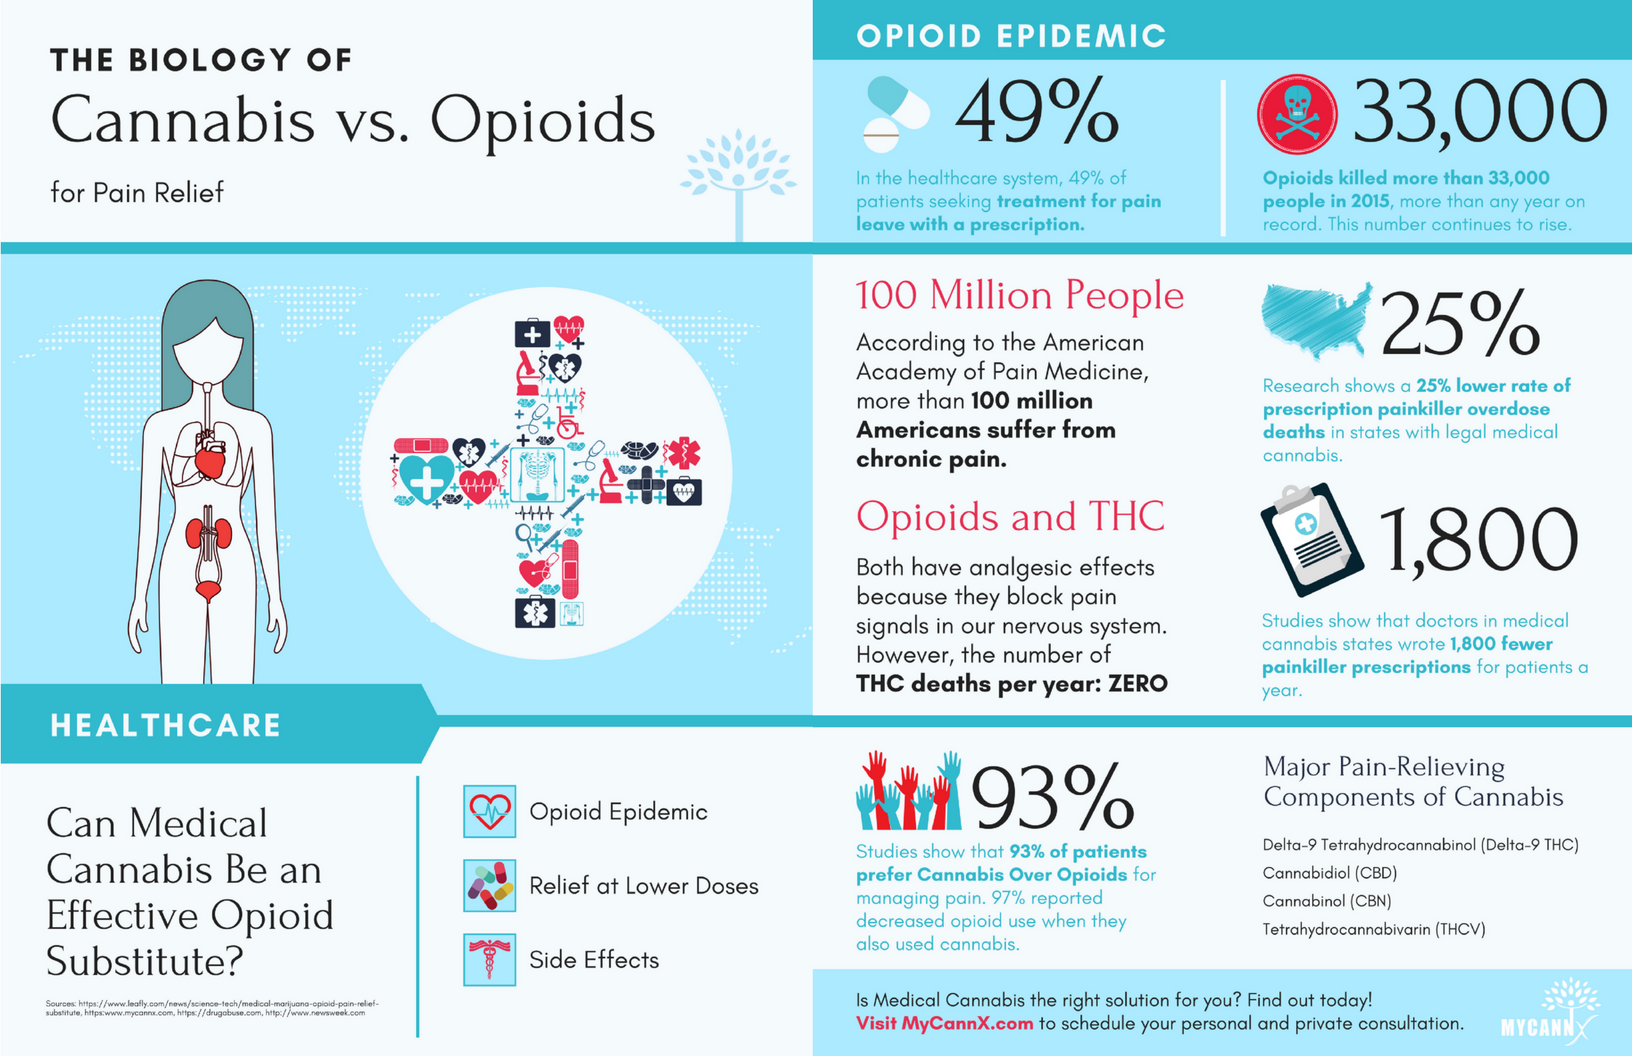 Cannabis vs. Opioids Infographic.png